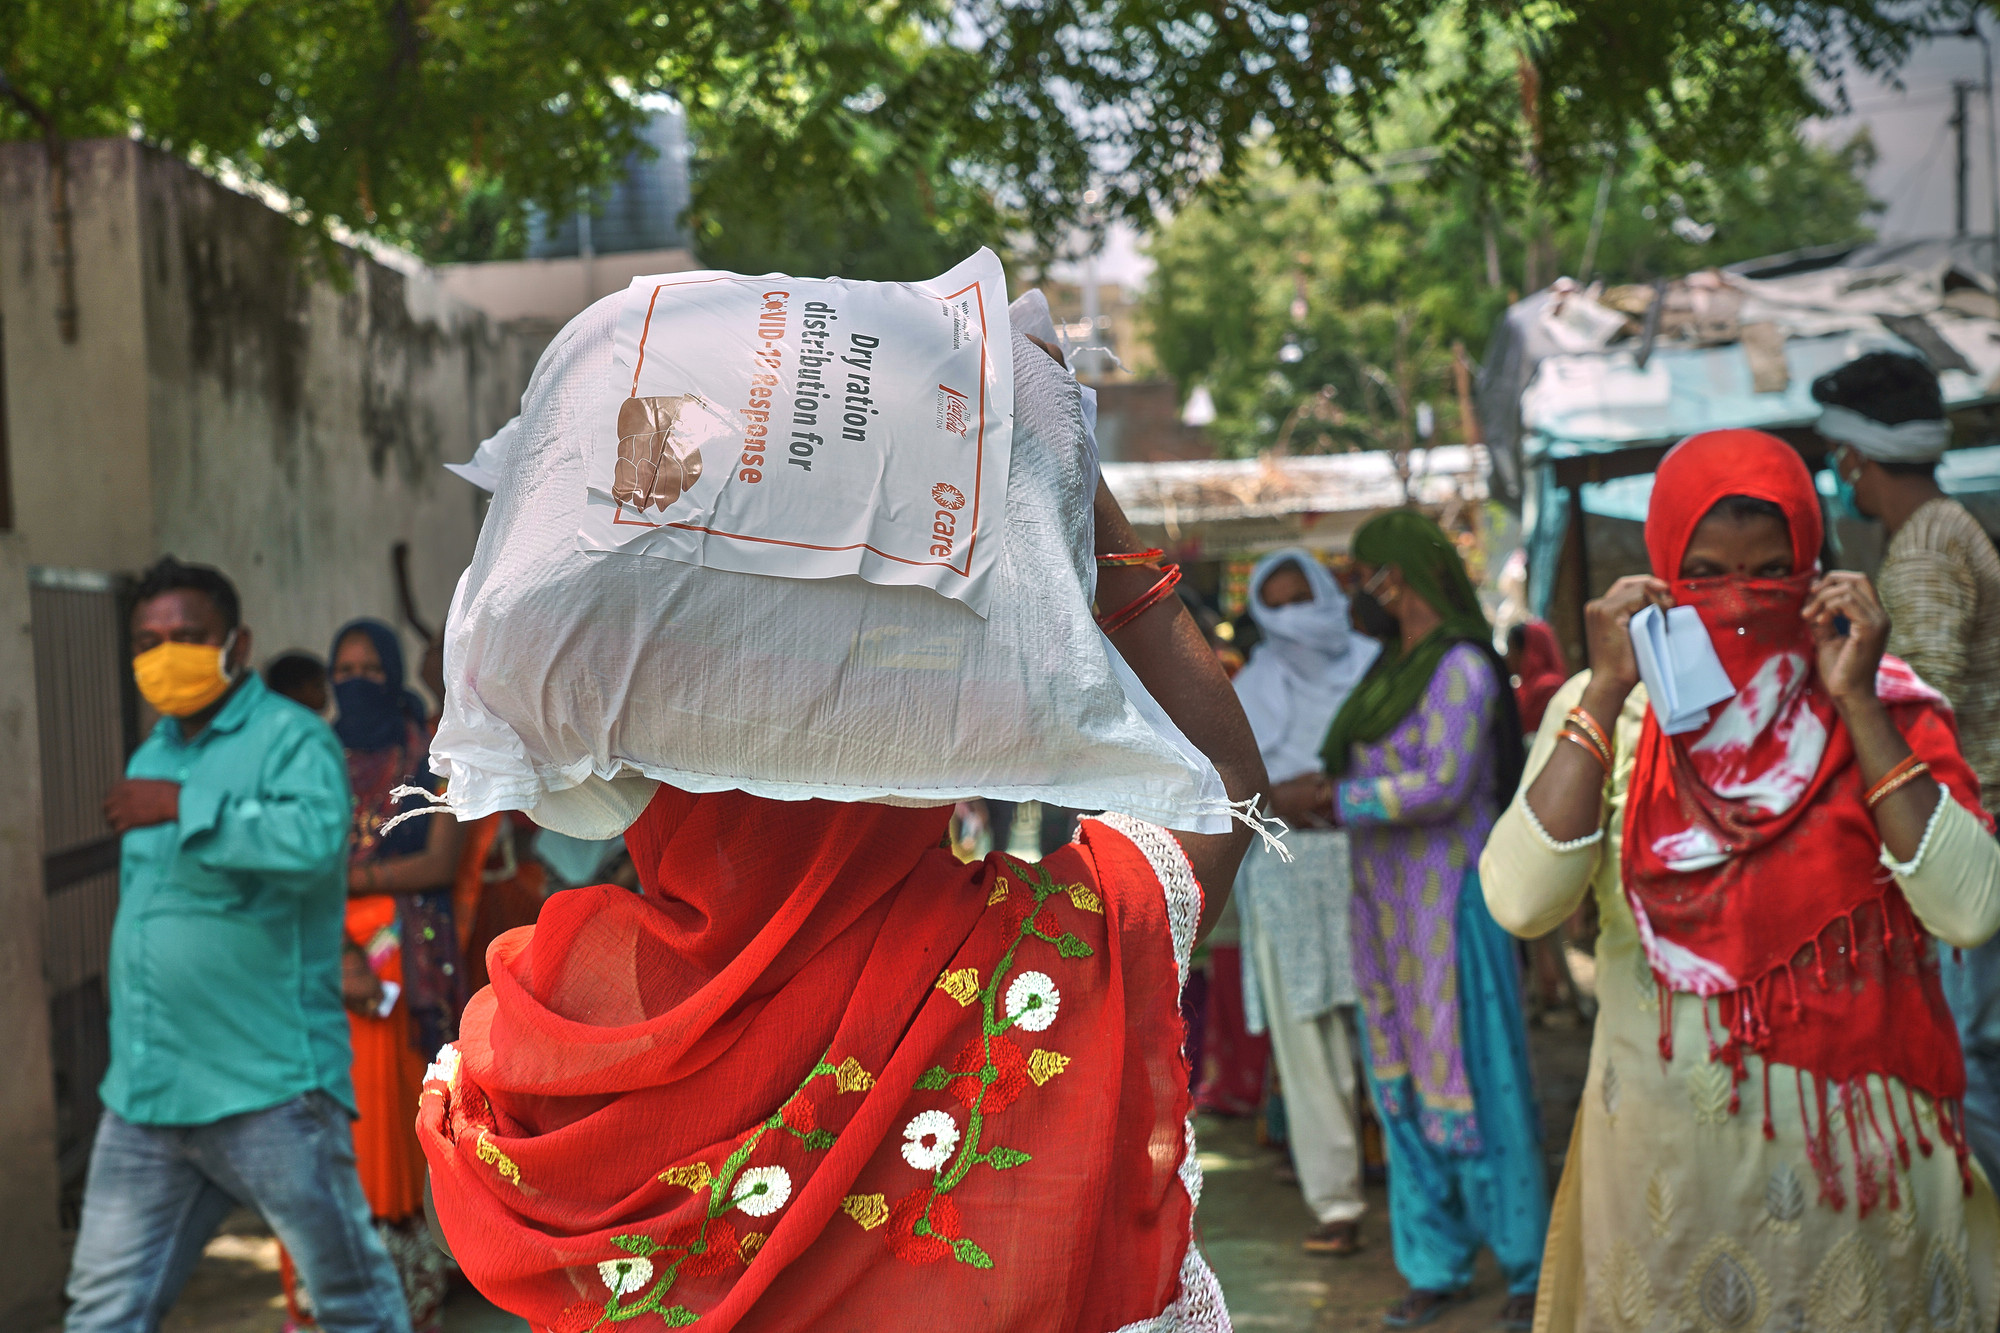 A woman carries a bag of supplies on her head.